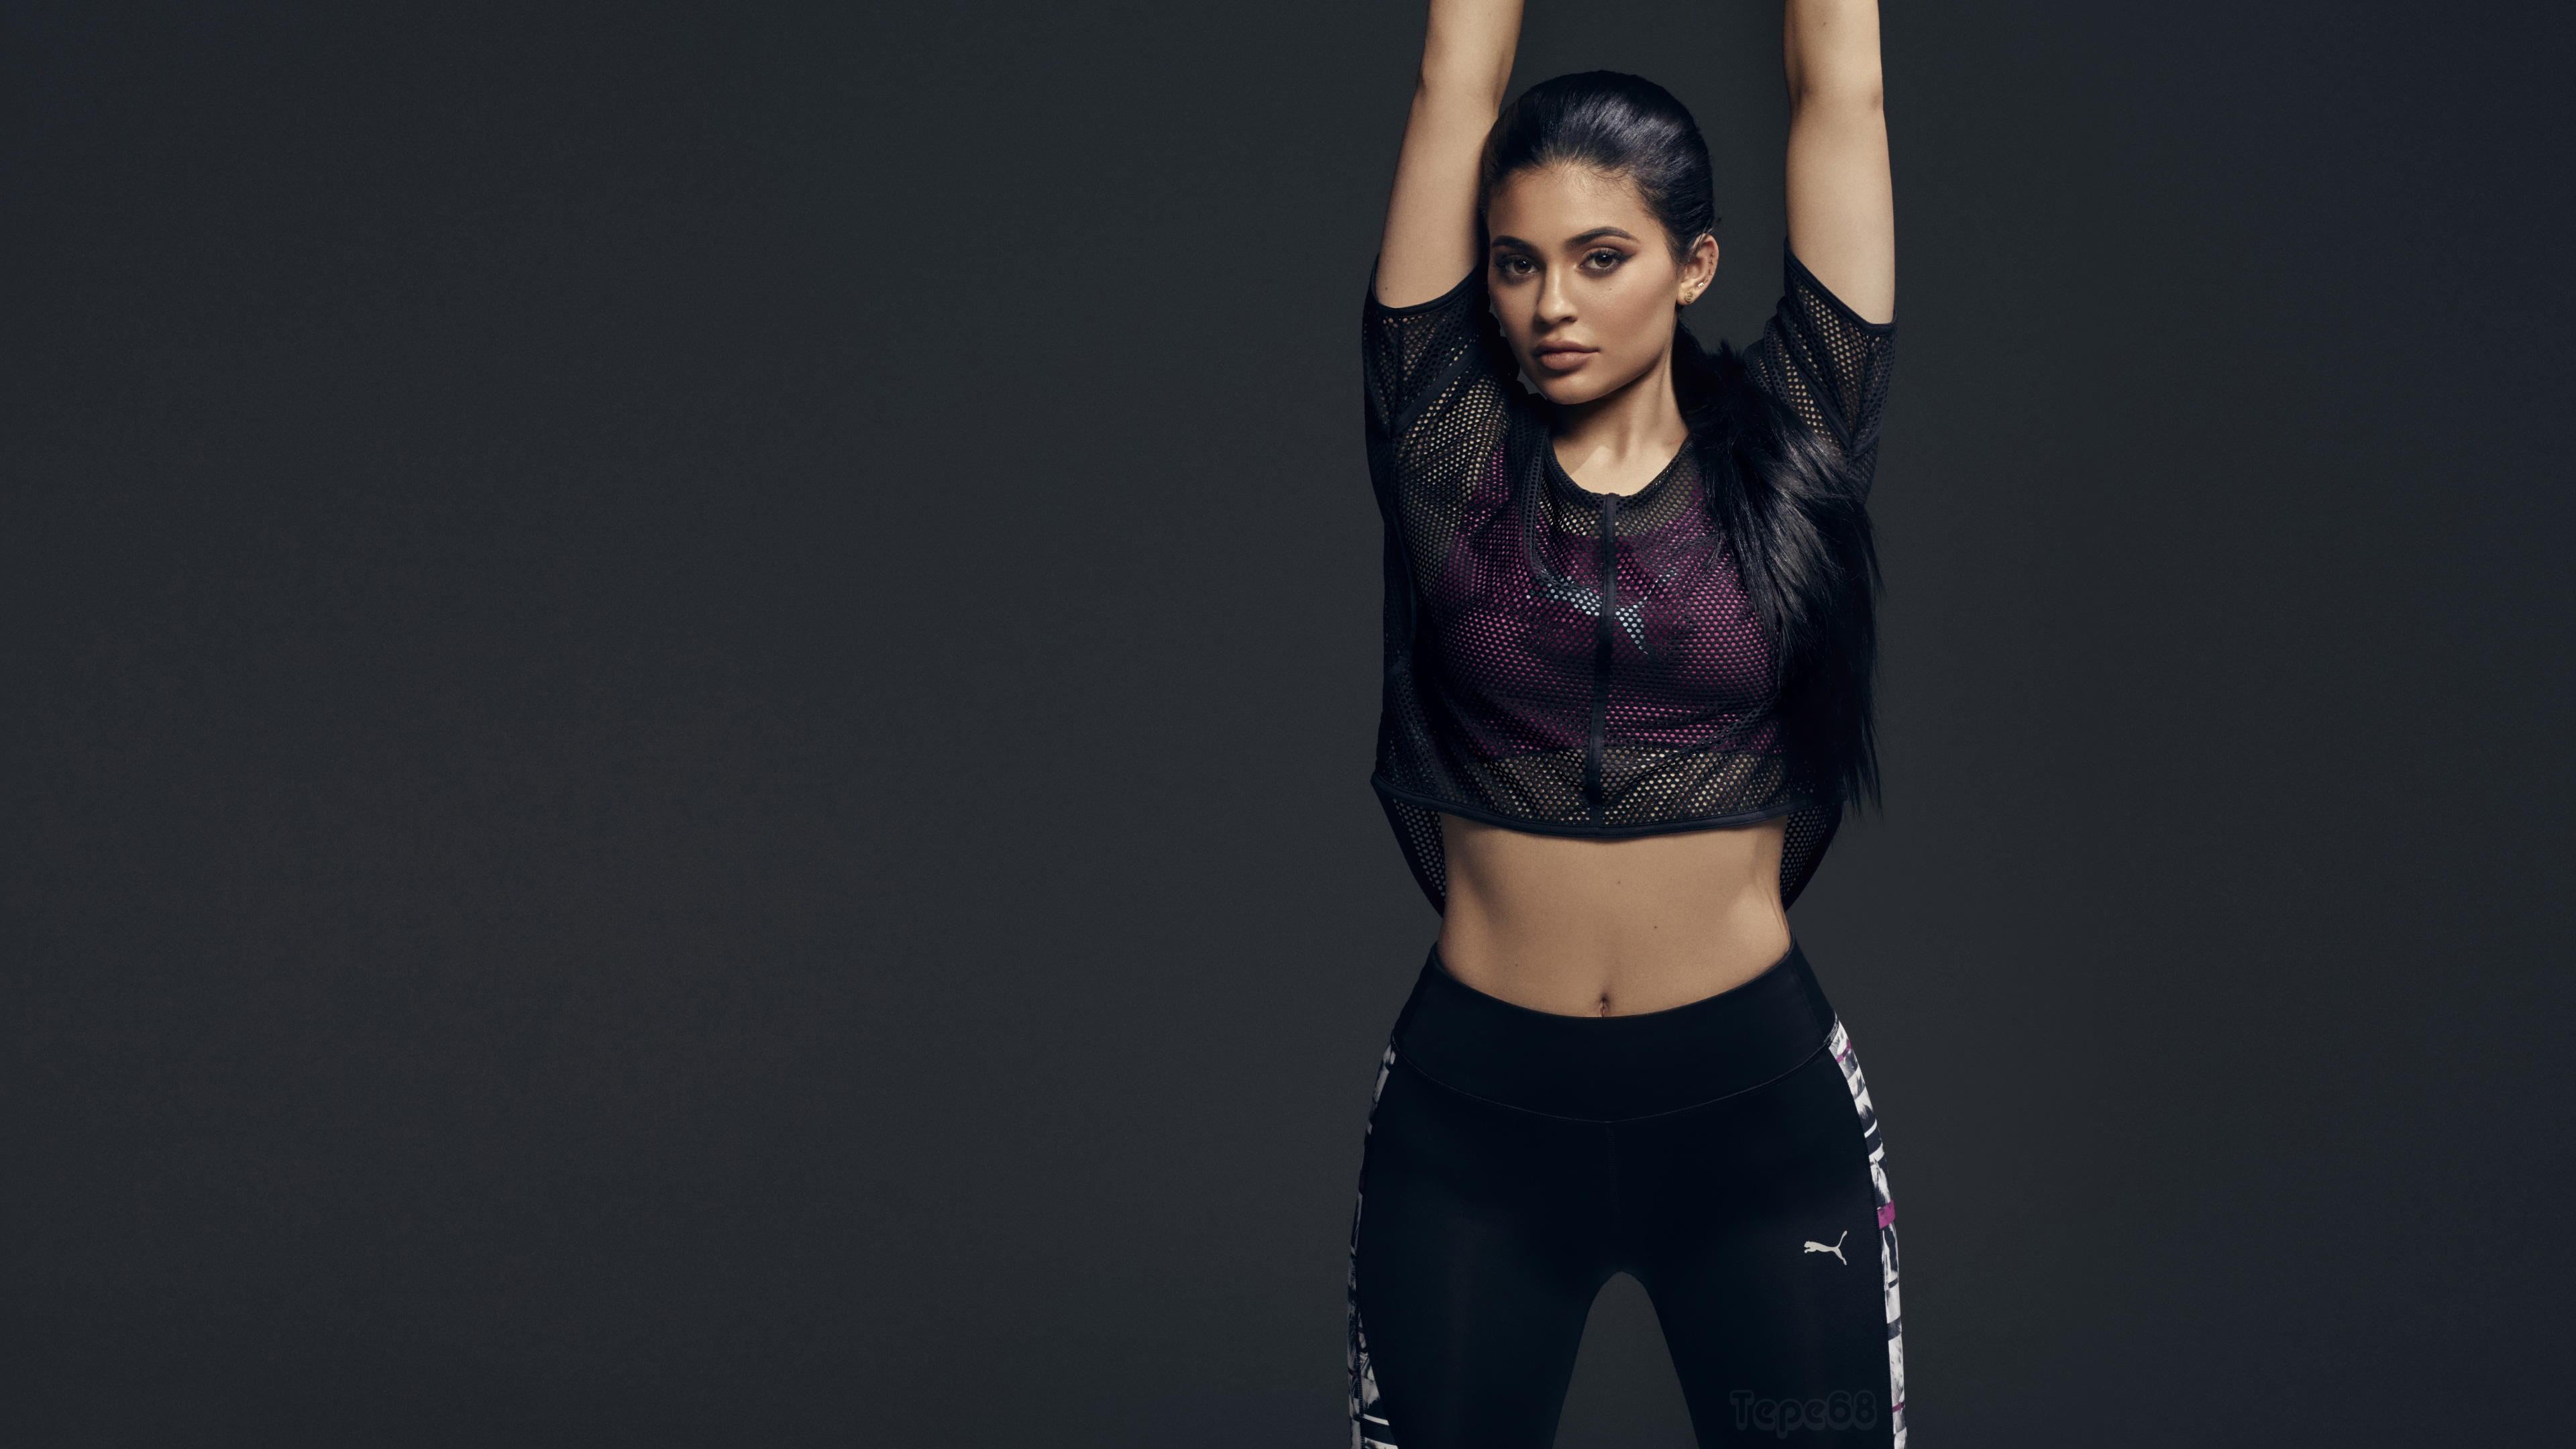 Kylie Jenner Wallpapers Top Free Kylie Jenner Backgrounds